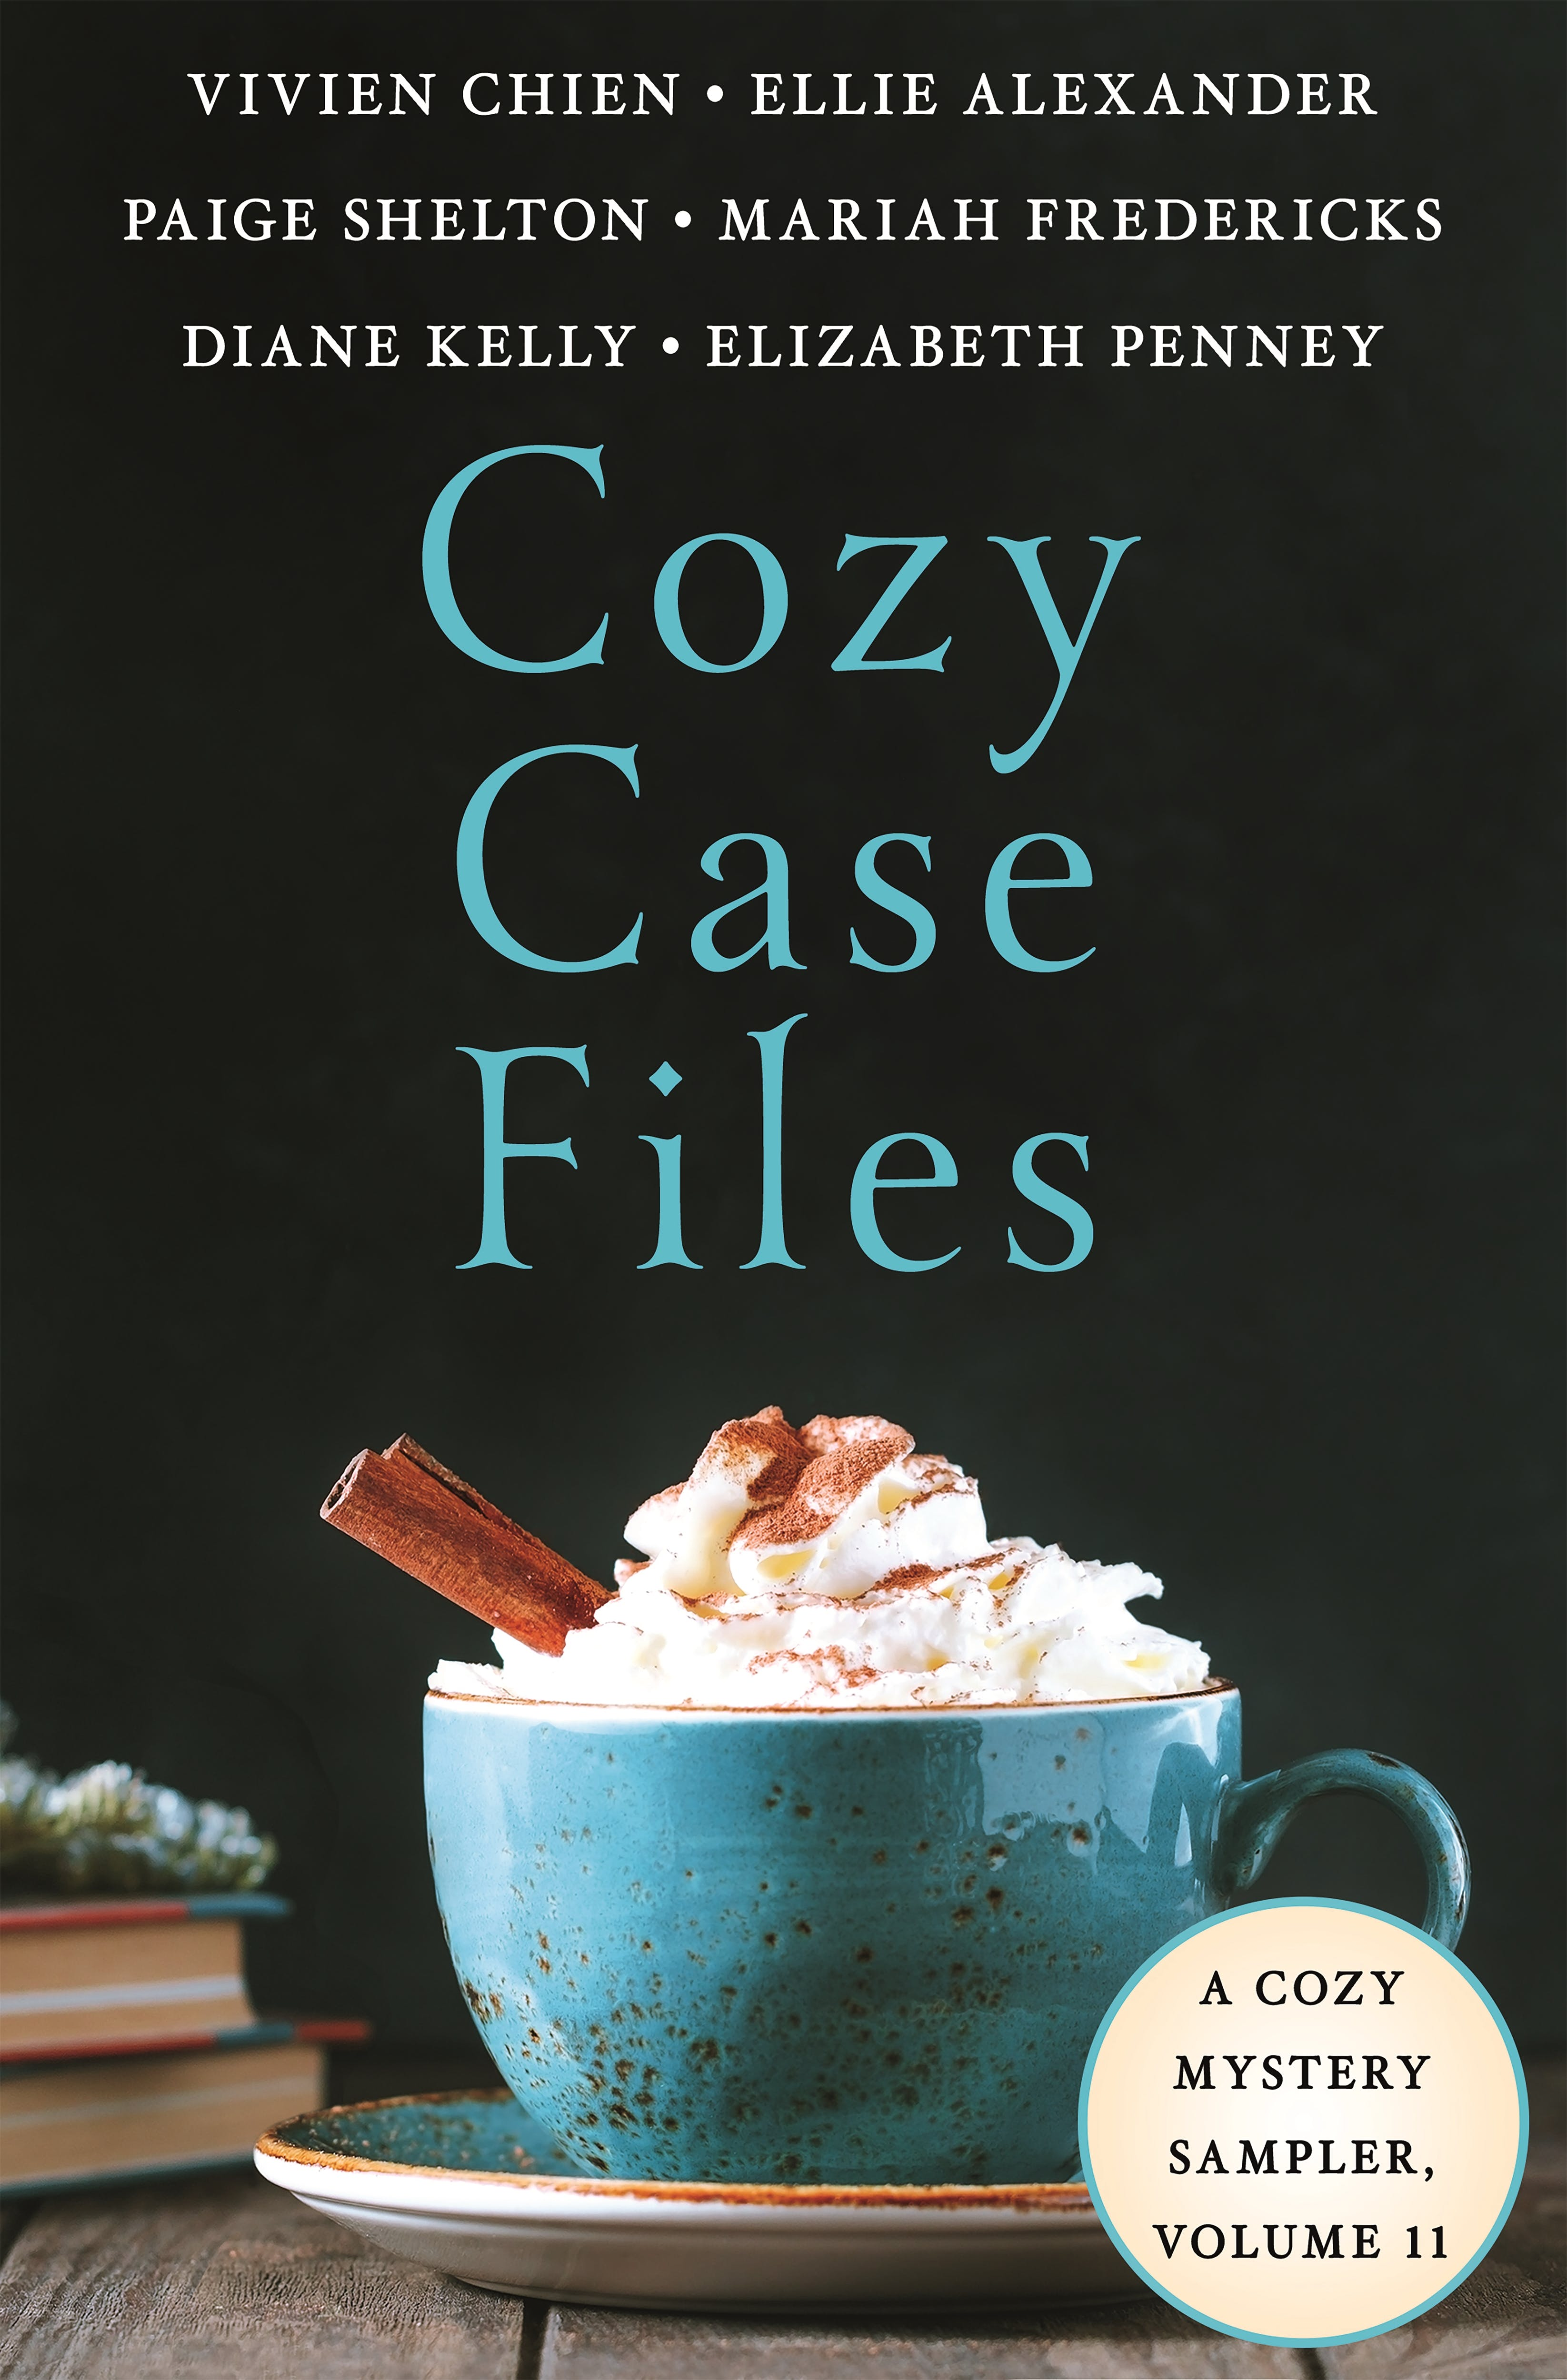 Image of Cozy Case Files, A Cozy Mystery Sampler, Volume 11